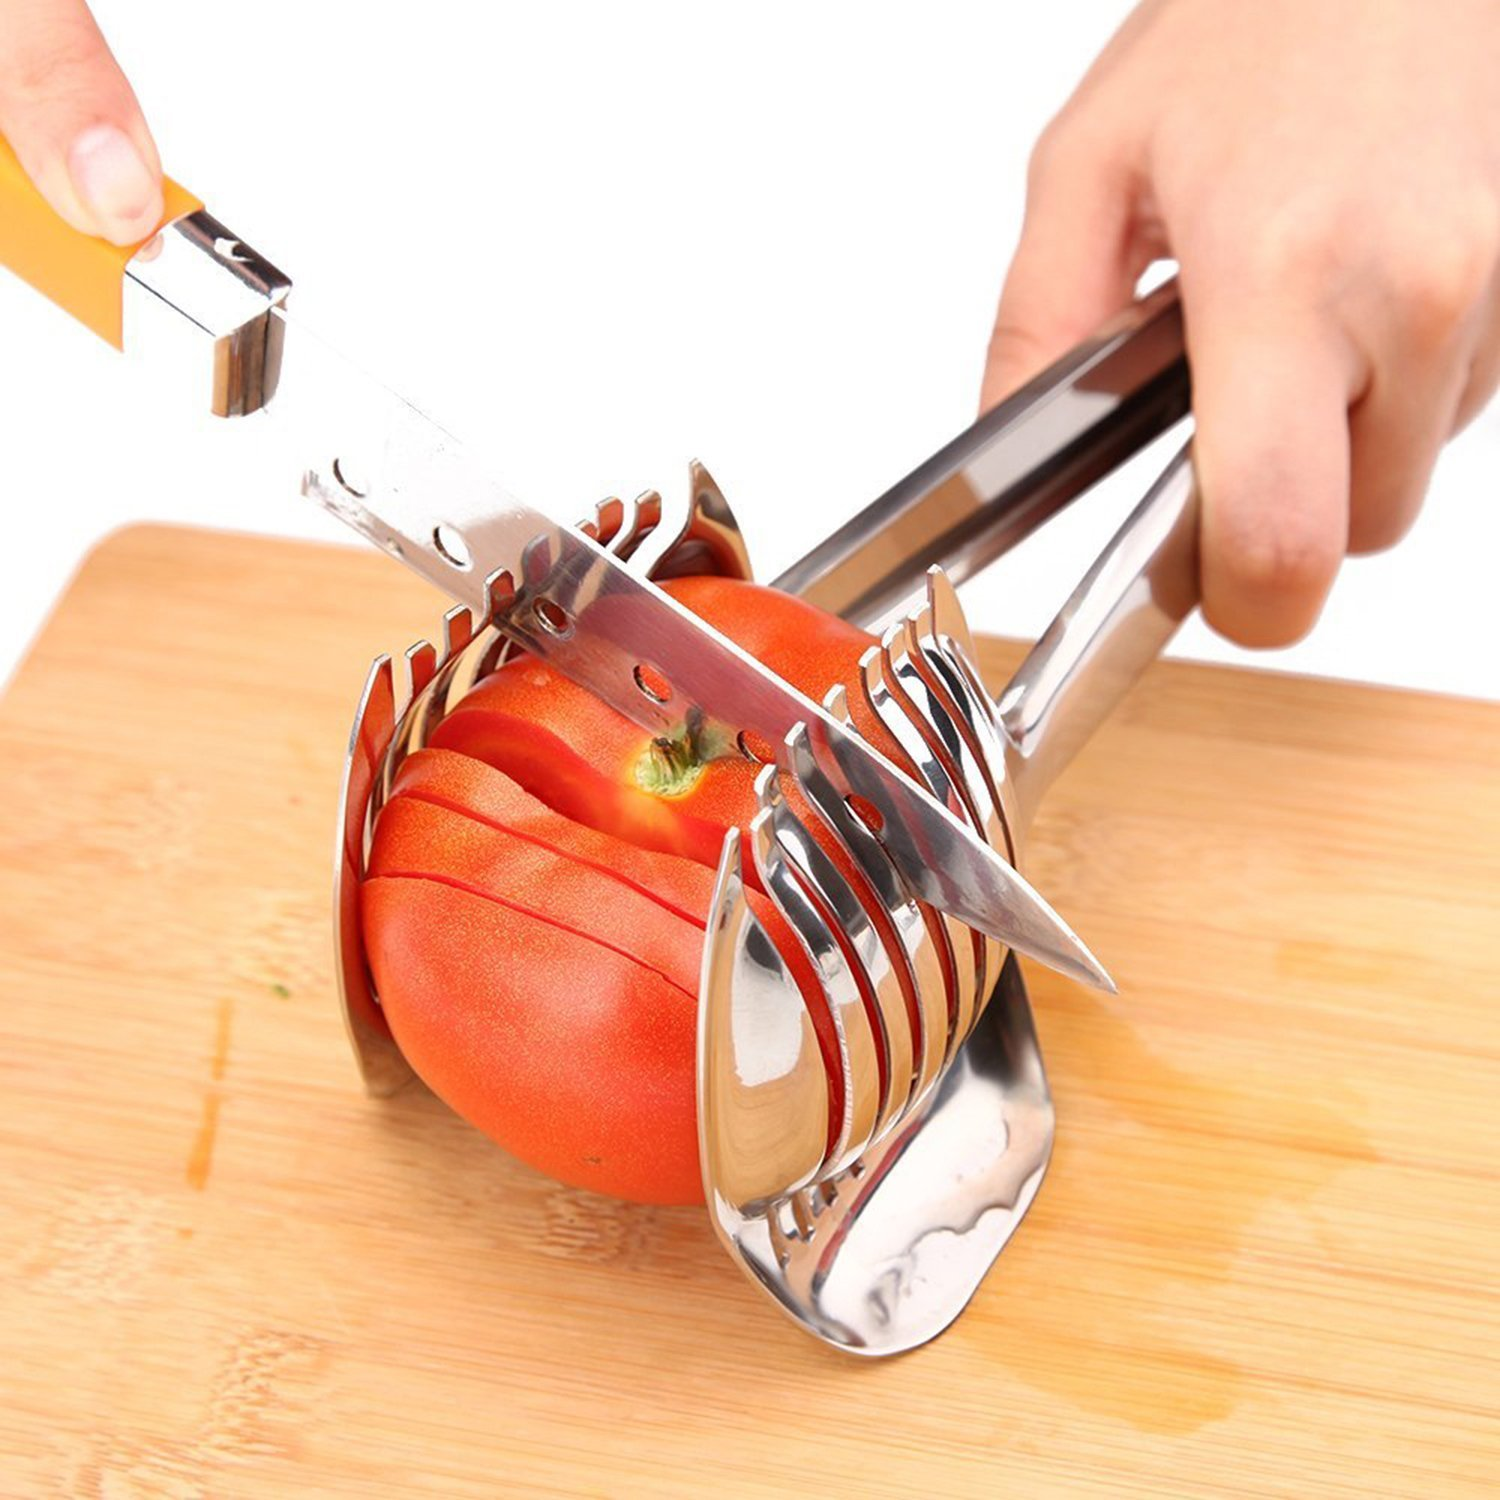 Tomato Slicer Lemon Cutter Multipurpose Handheld Round Fruit Tongs Stainless Steel Onion Holder Easy Slicing Kiwi Fruits & Vegetable Tools Kitchen Cutting Aid Gadgets Tool